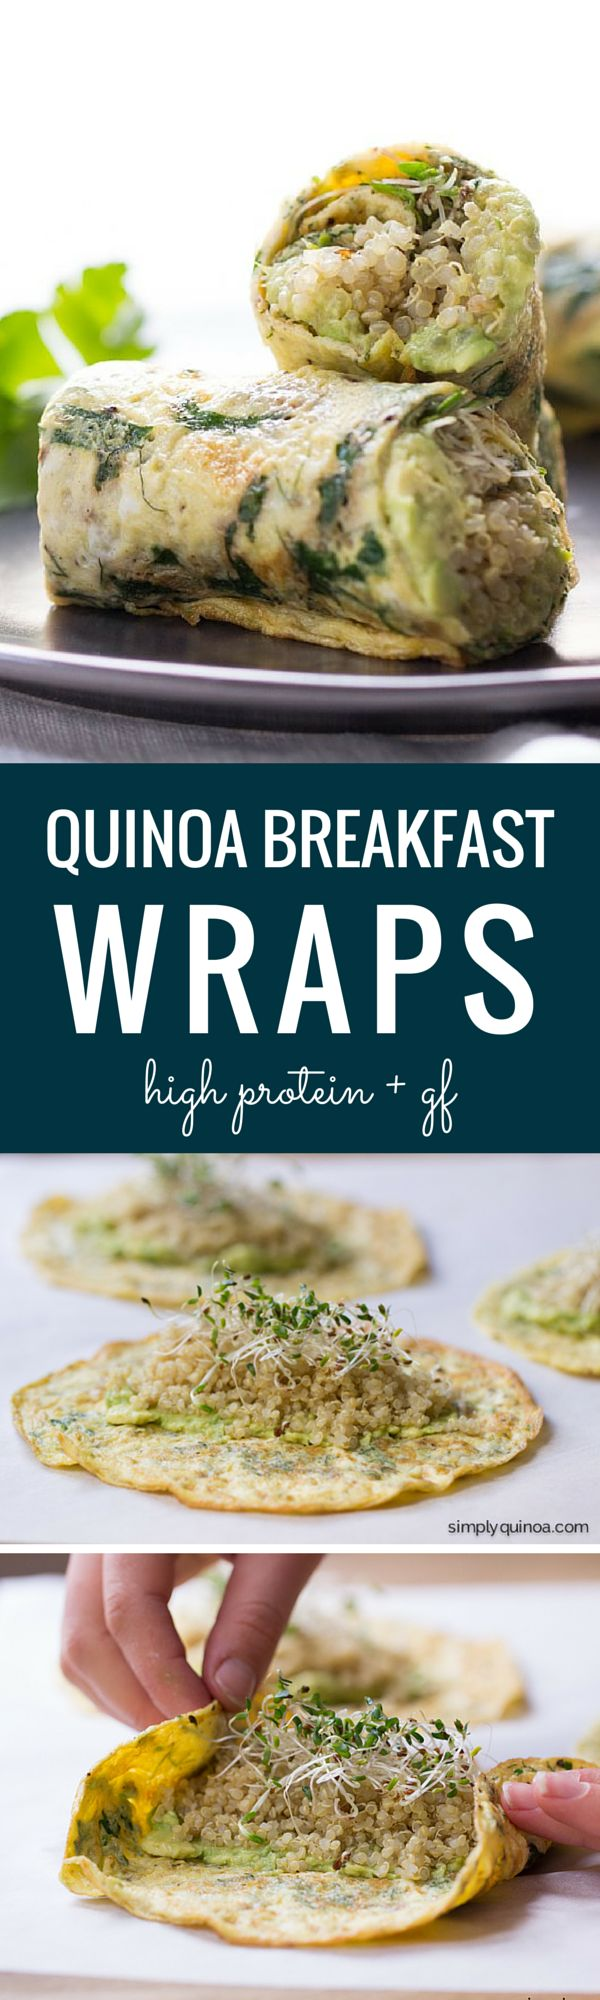 Herbed Quinoa Breakfast Wraps - these are a quick, easy and totally portable breakfast. Packed with protein + super delicious!